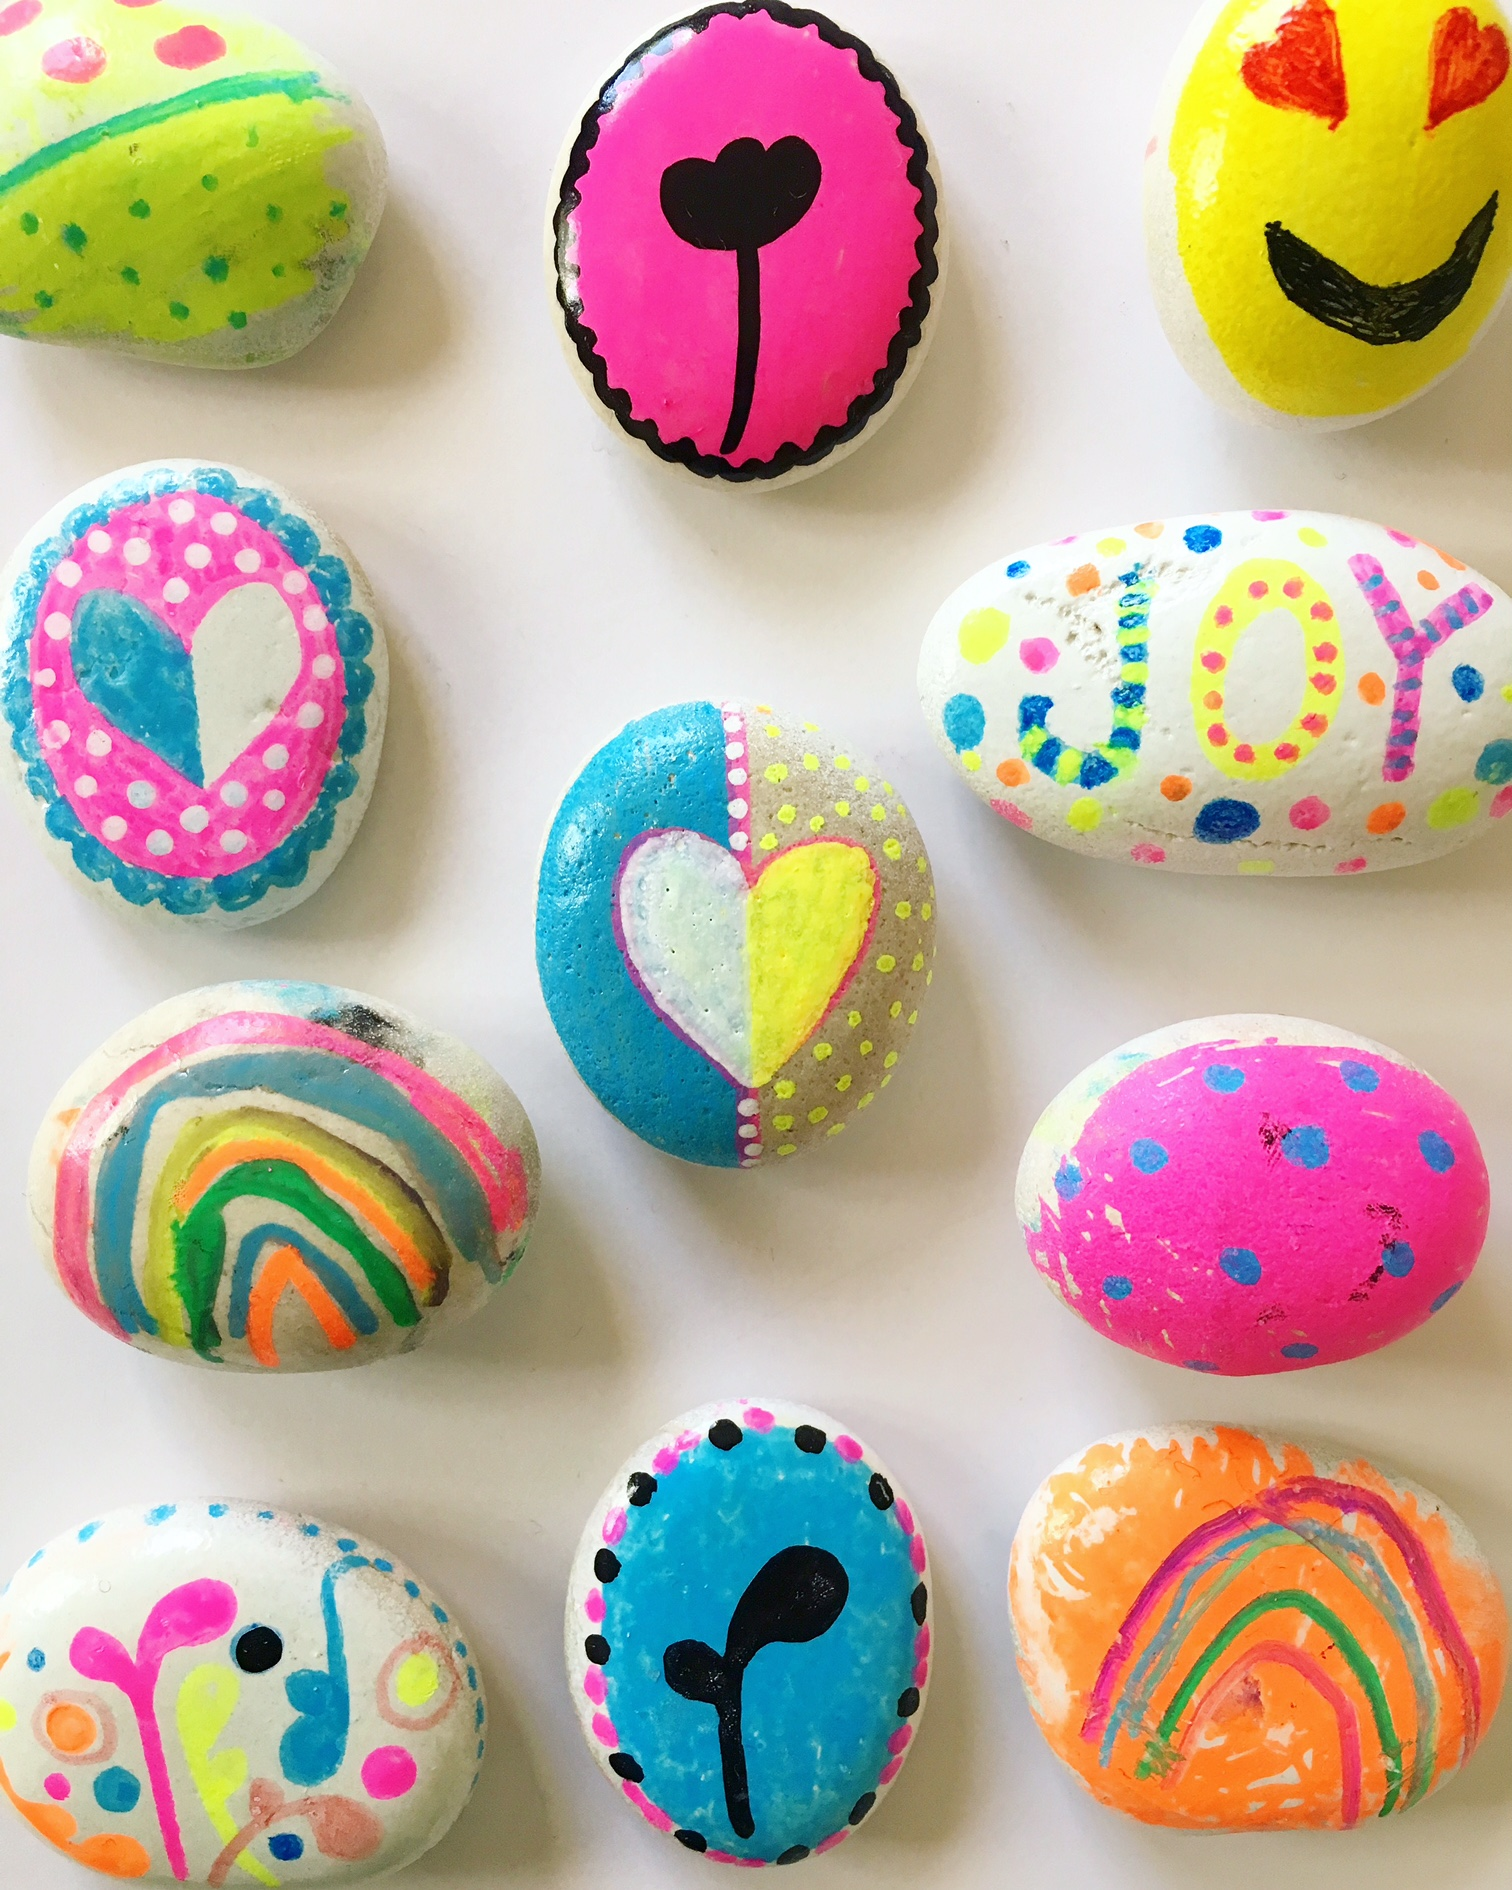 Painted rocks – kindness rock painting ideas for kid, more on the blog.